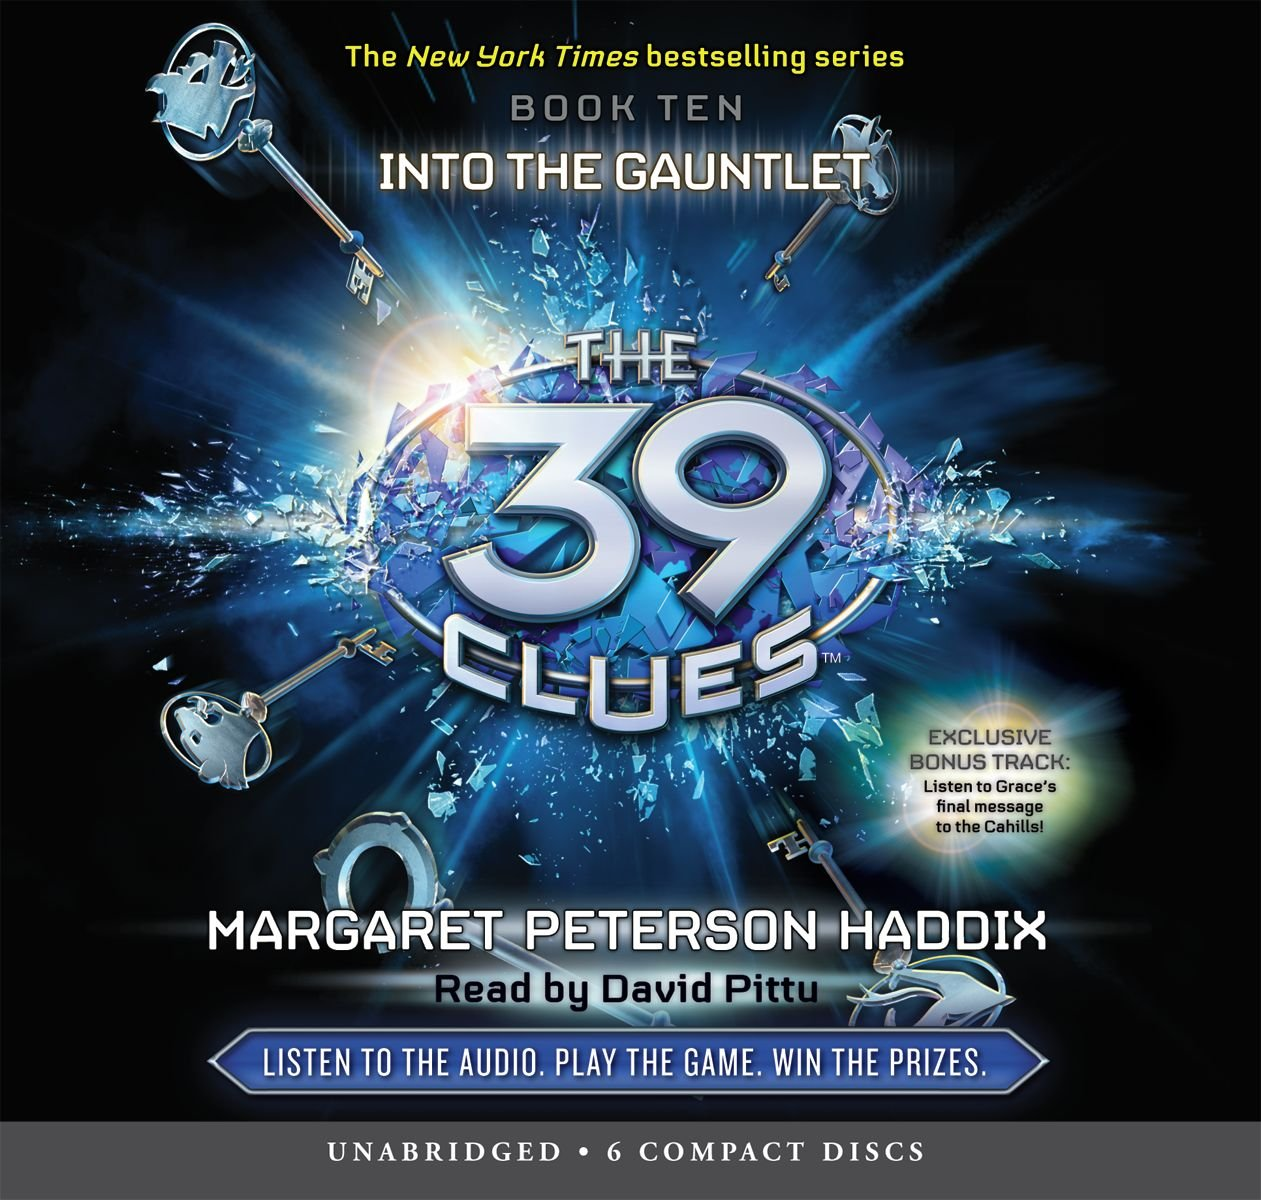 Into the Gauntlet (The 39 Clues, Book 10) - Audio Library Edition